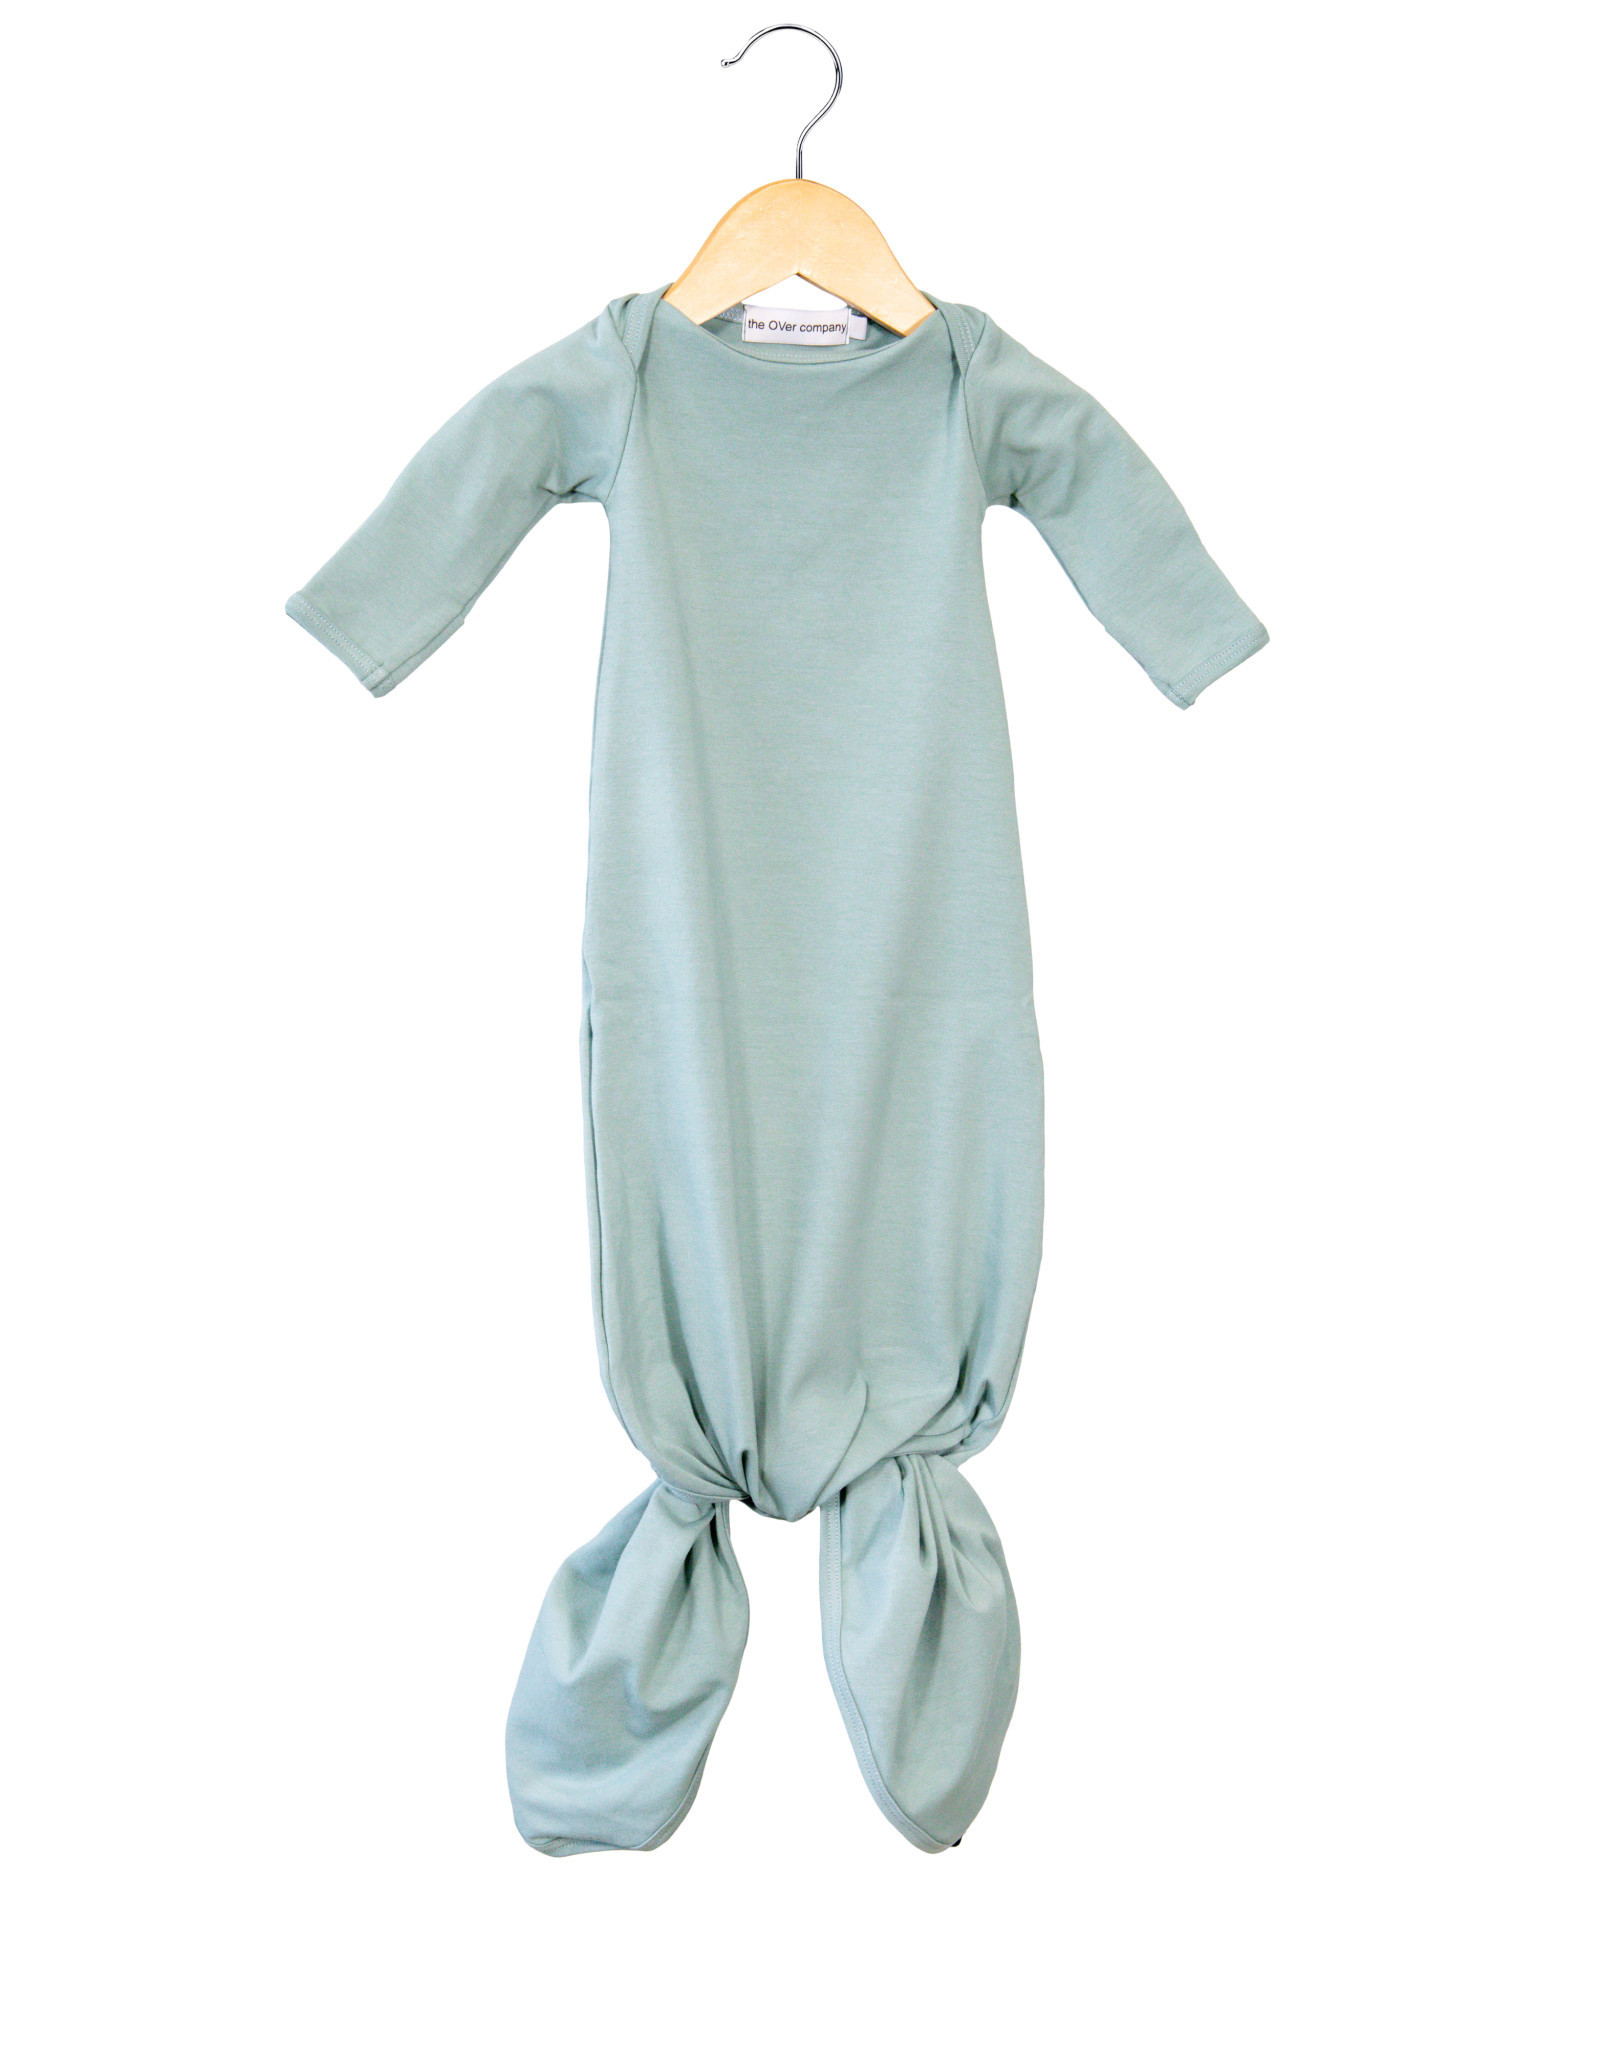 The Over Company The OVer Company Nodo Gown - Everett 3M